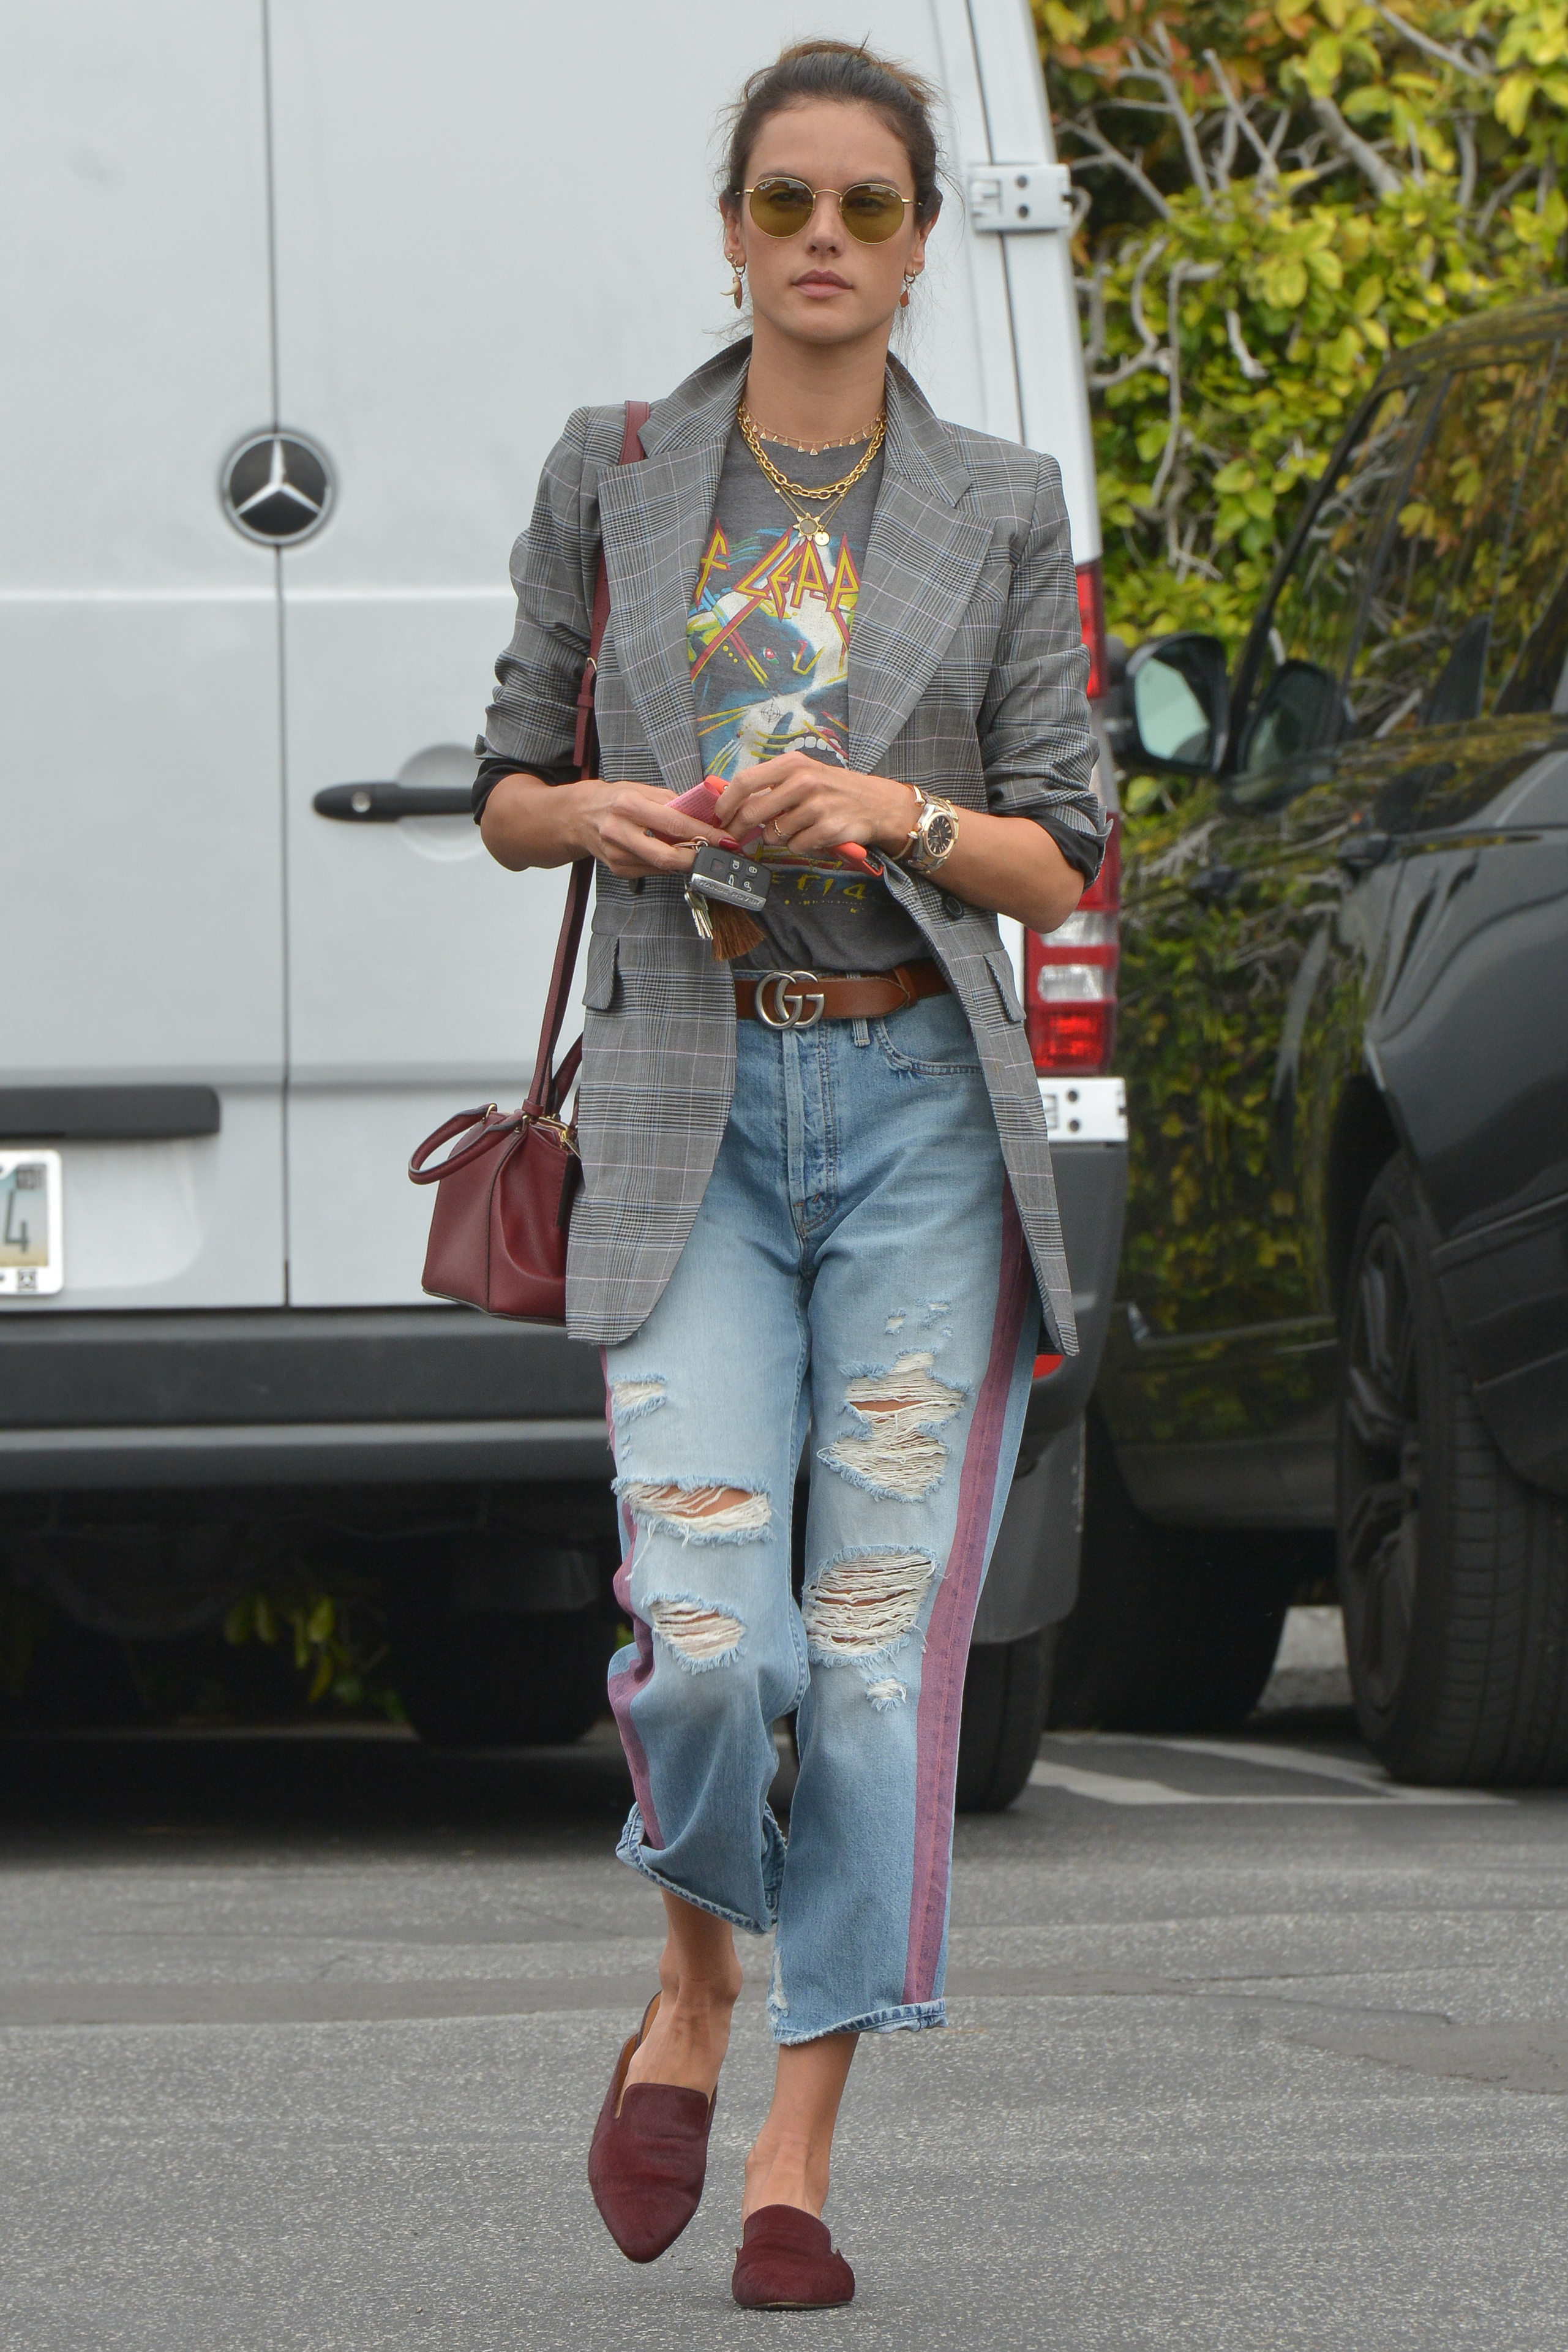 cab631029ae8 Best Dressed Of The Week: The Best Street Style & Red Carpet Looks   PORTER